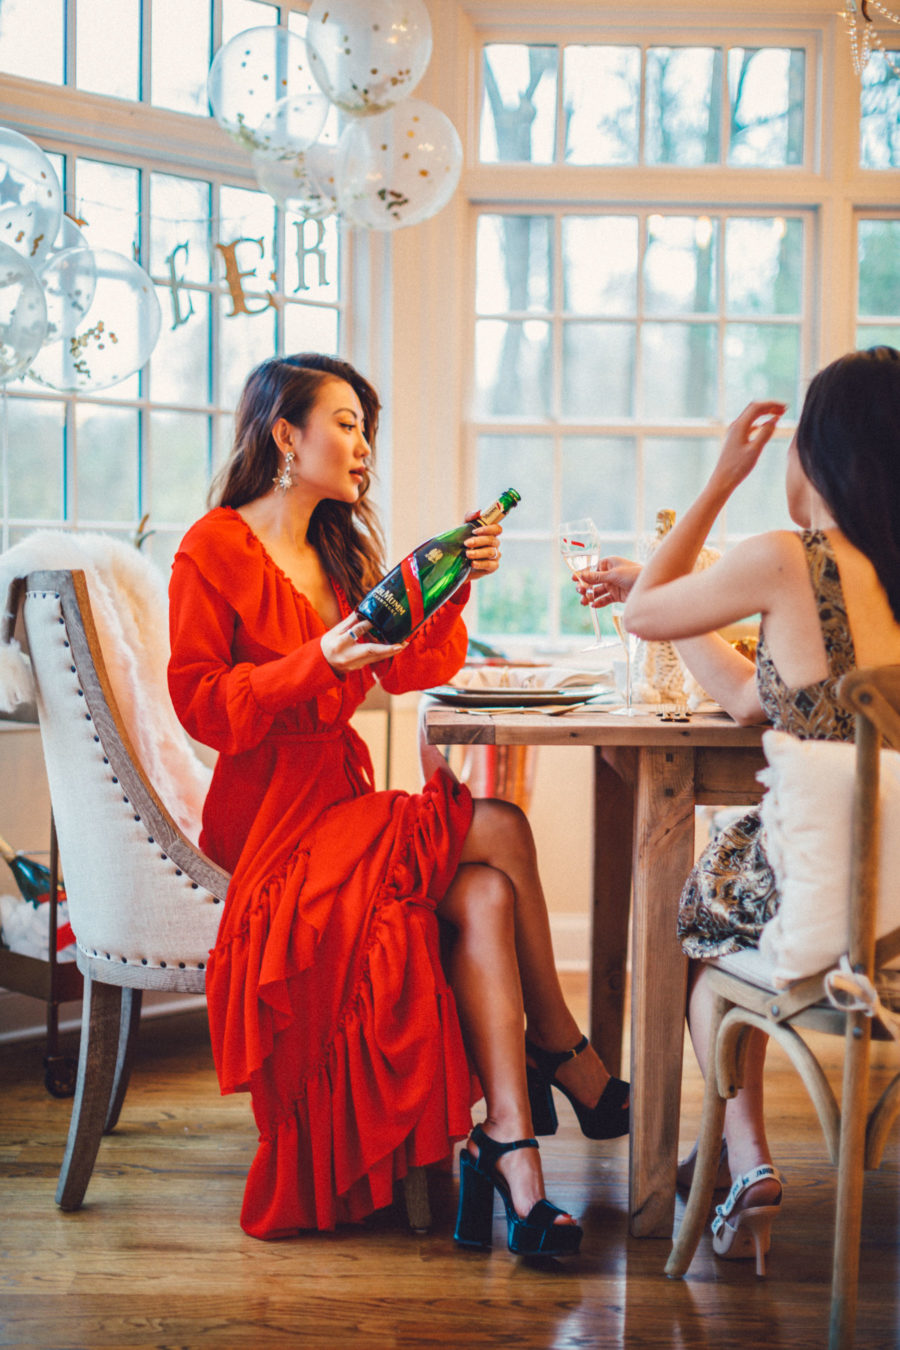 fashion blogger jessica wang features her favorite holiday party shoes featuring laurence dacade velvet green platform sandals // Notjessfashion.com